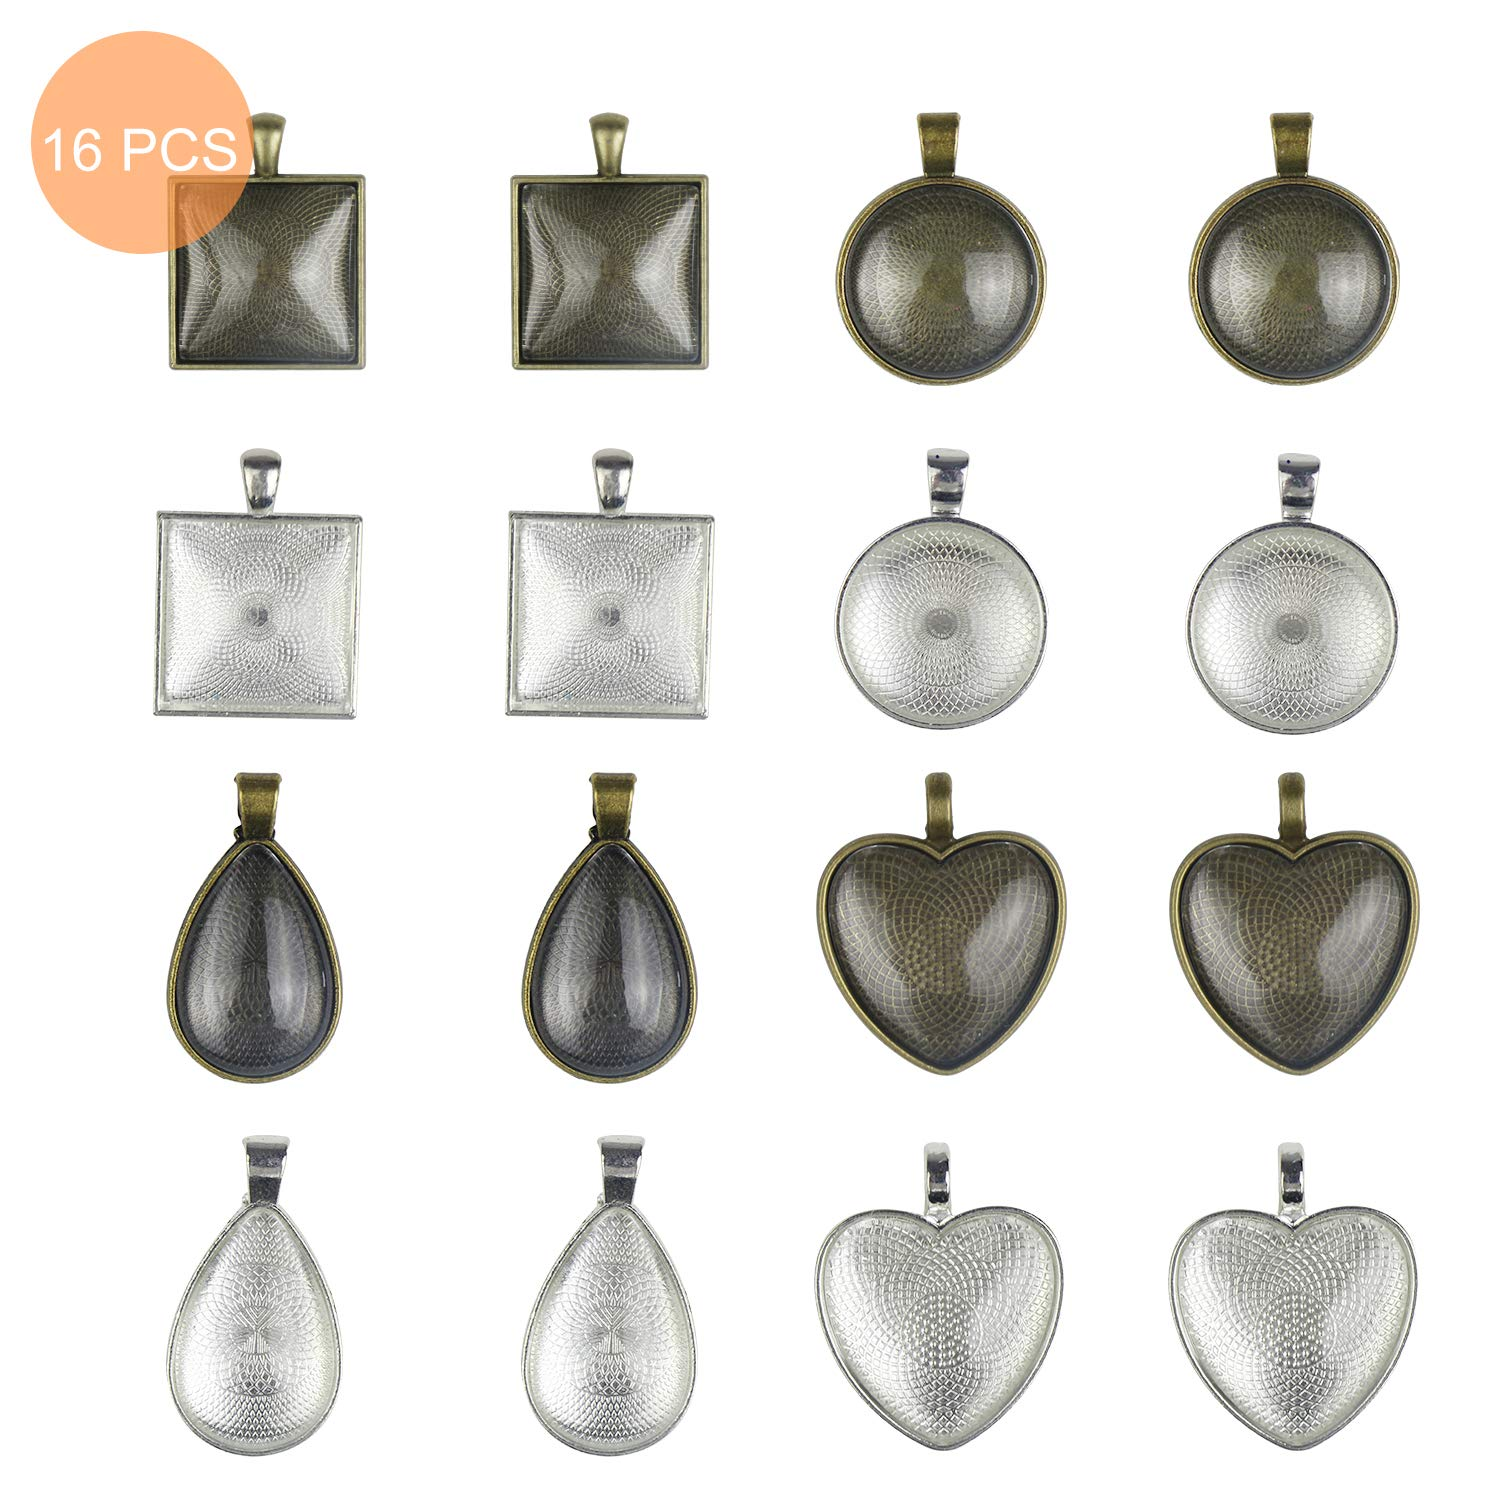 Pendant Blanks for Jewelry Making 33 Feet Necklace Jewelry Chain Crafting DIY 50pcs Jump Rings and 20pcs Lobster Clasps LETS RESIN 16pcs Pendant Trays with 16pcs Glass Cabochon Dome Tiles